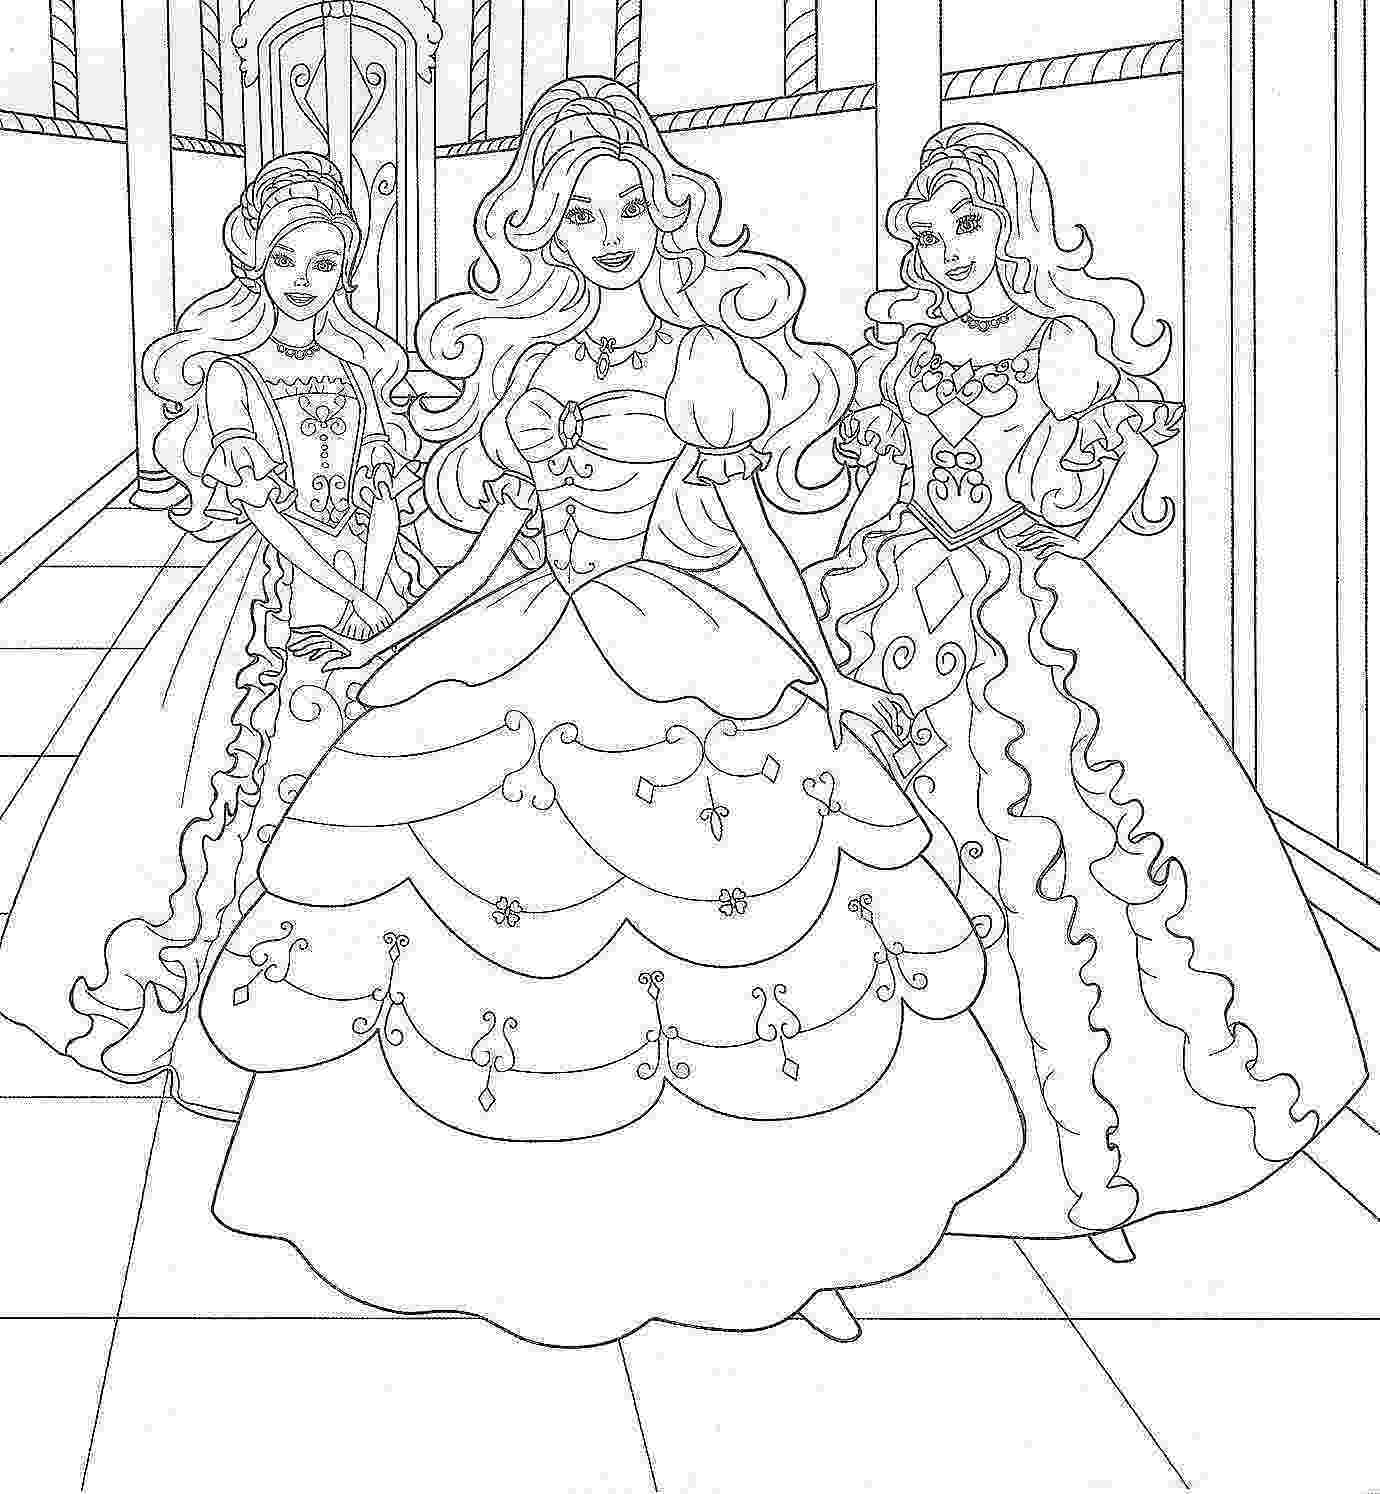 barbie doll pictures to color awesome barbie doll coloring page barbie coloring doll color barbie to pictures